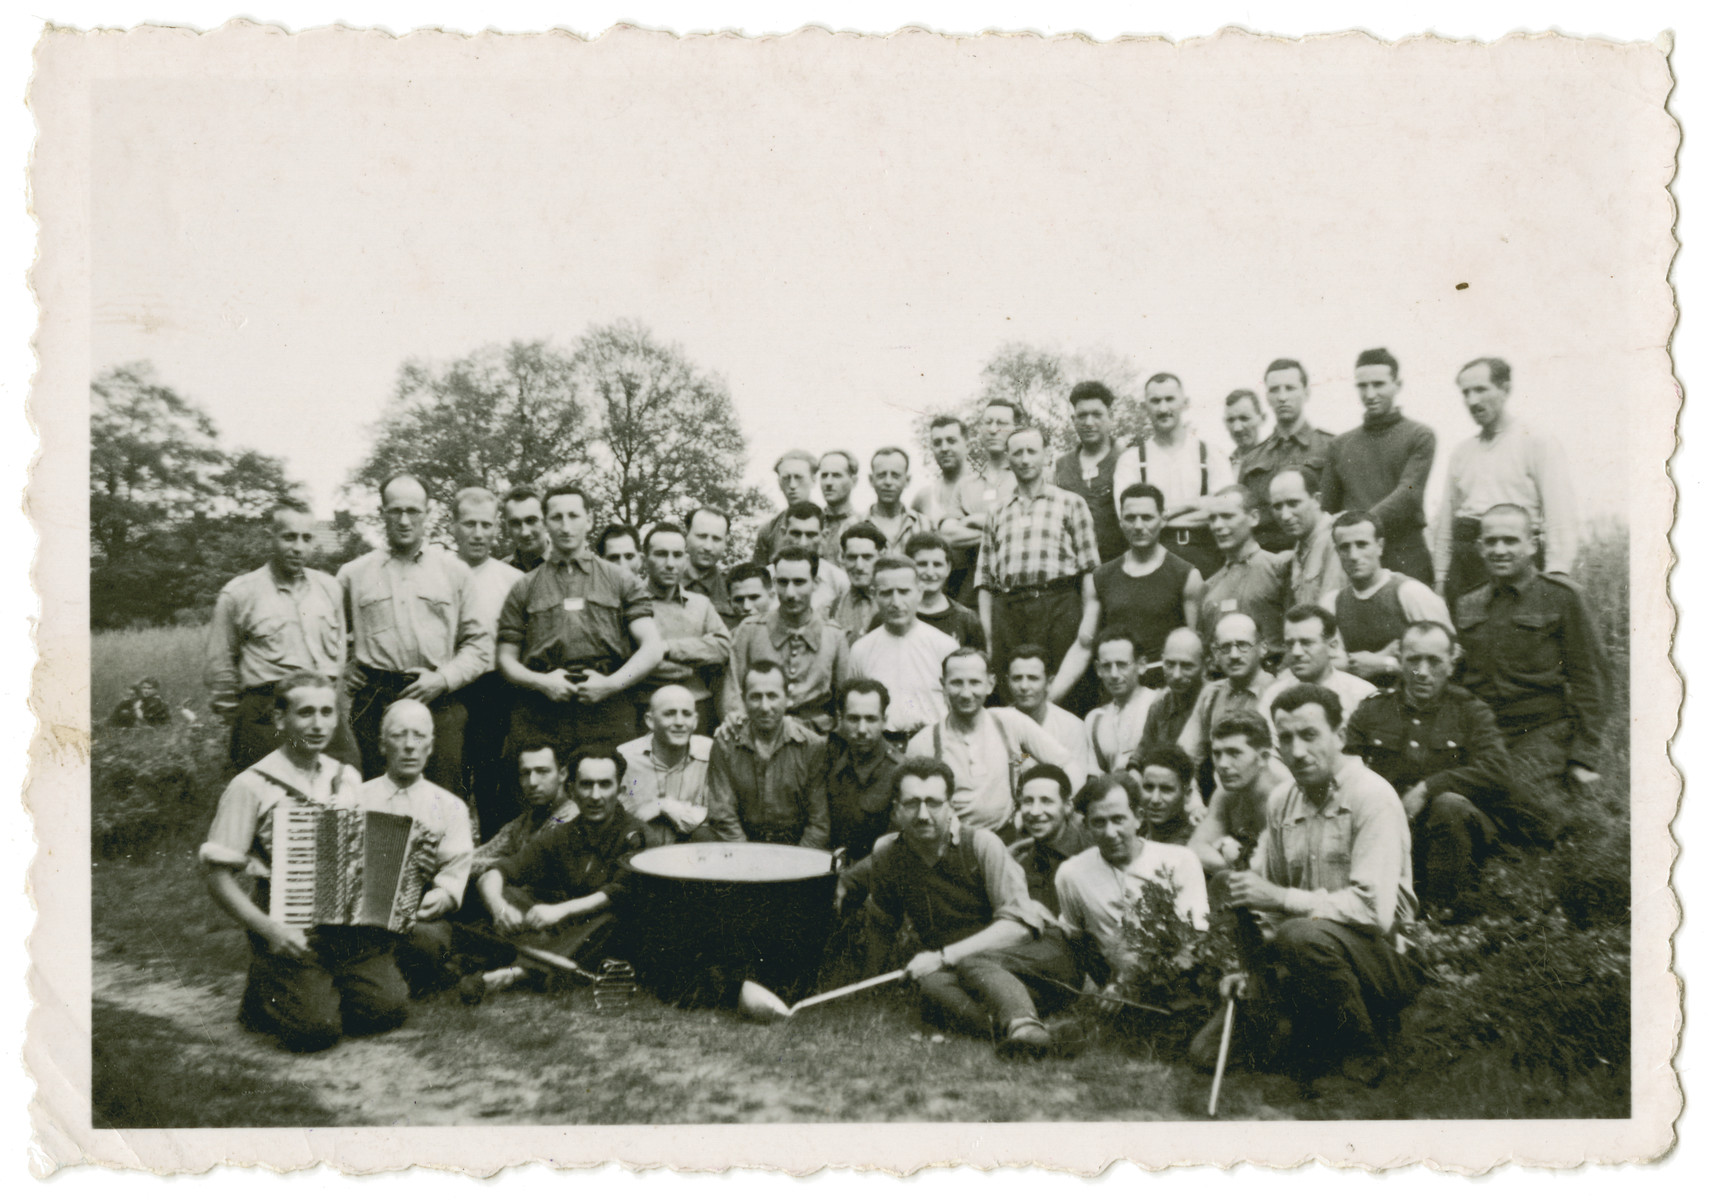 Group portrait of Belgian POWs in Stalag 10 C.  In front is a large pot.  Leopold Guttman is sitting next to it with a large laddle, and another POW holds an accordion.